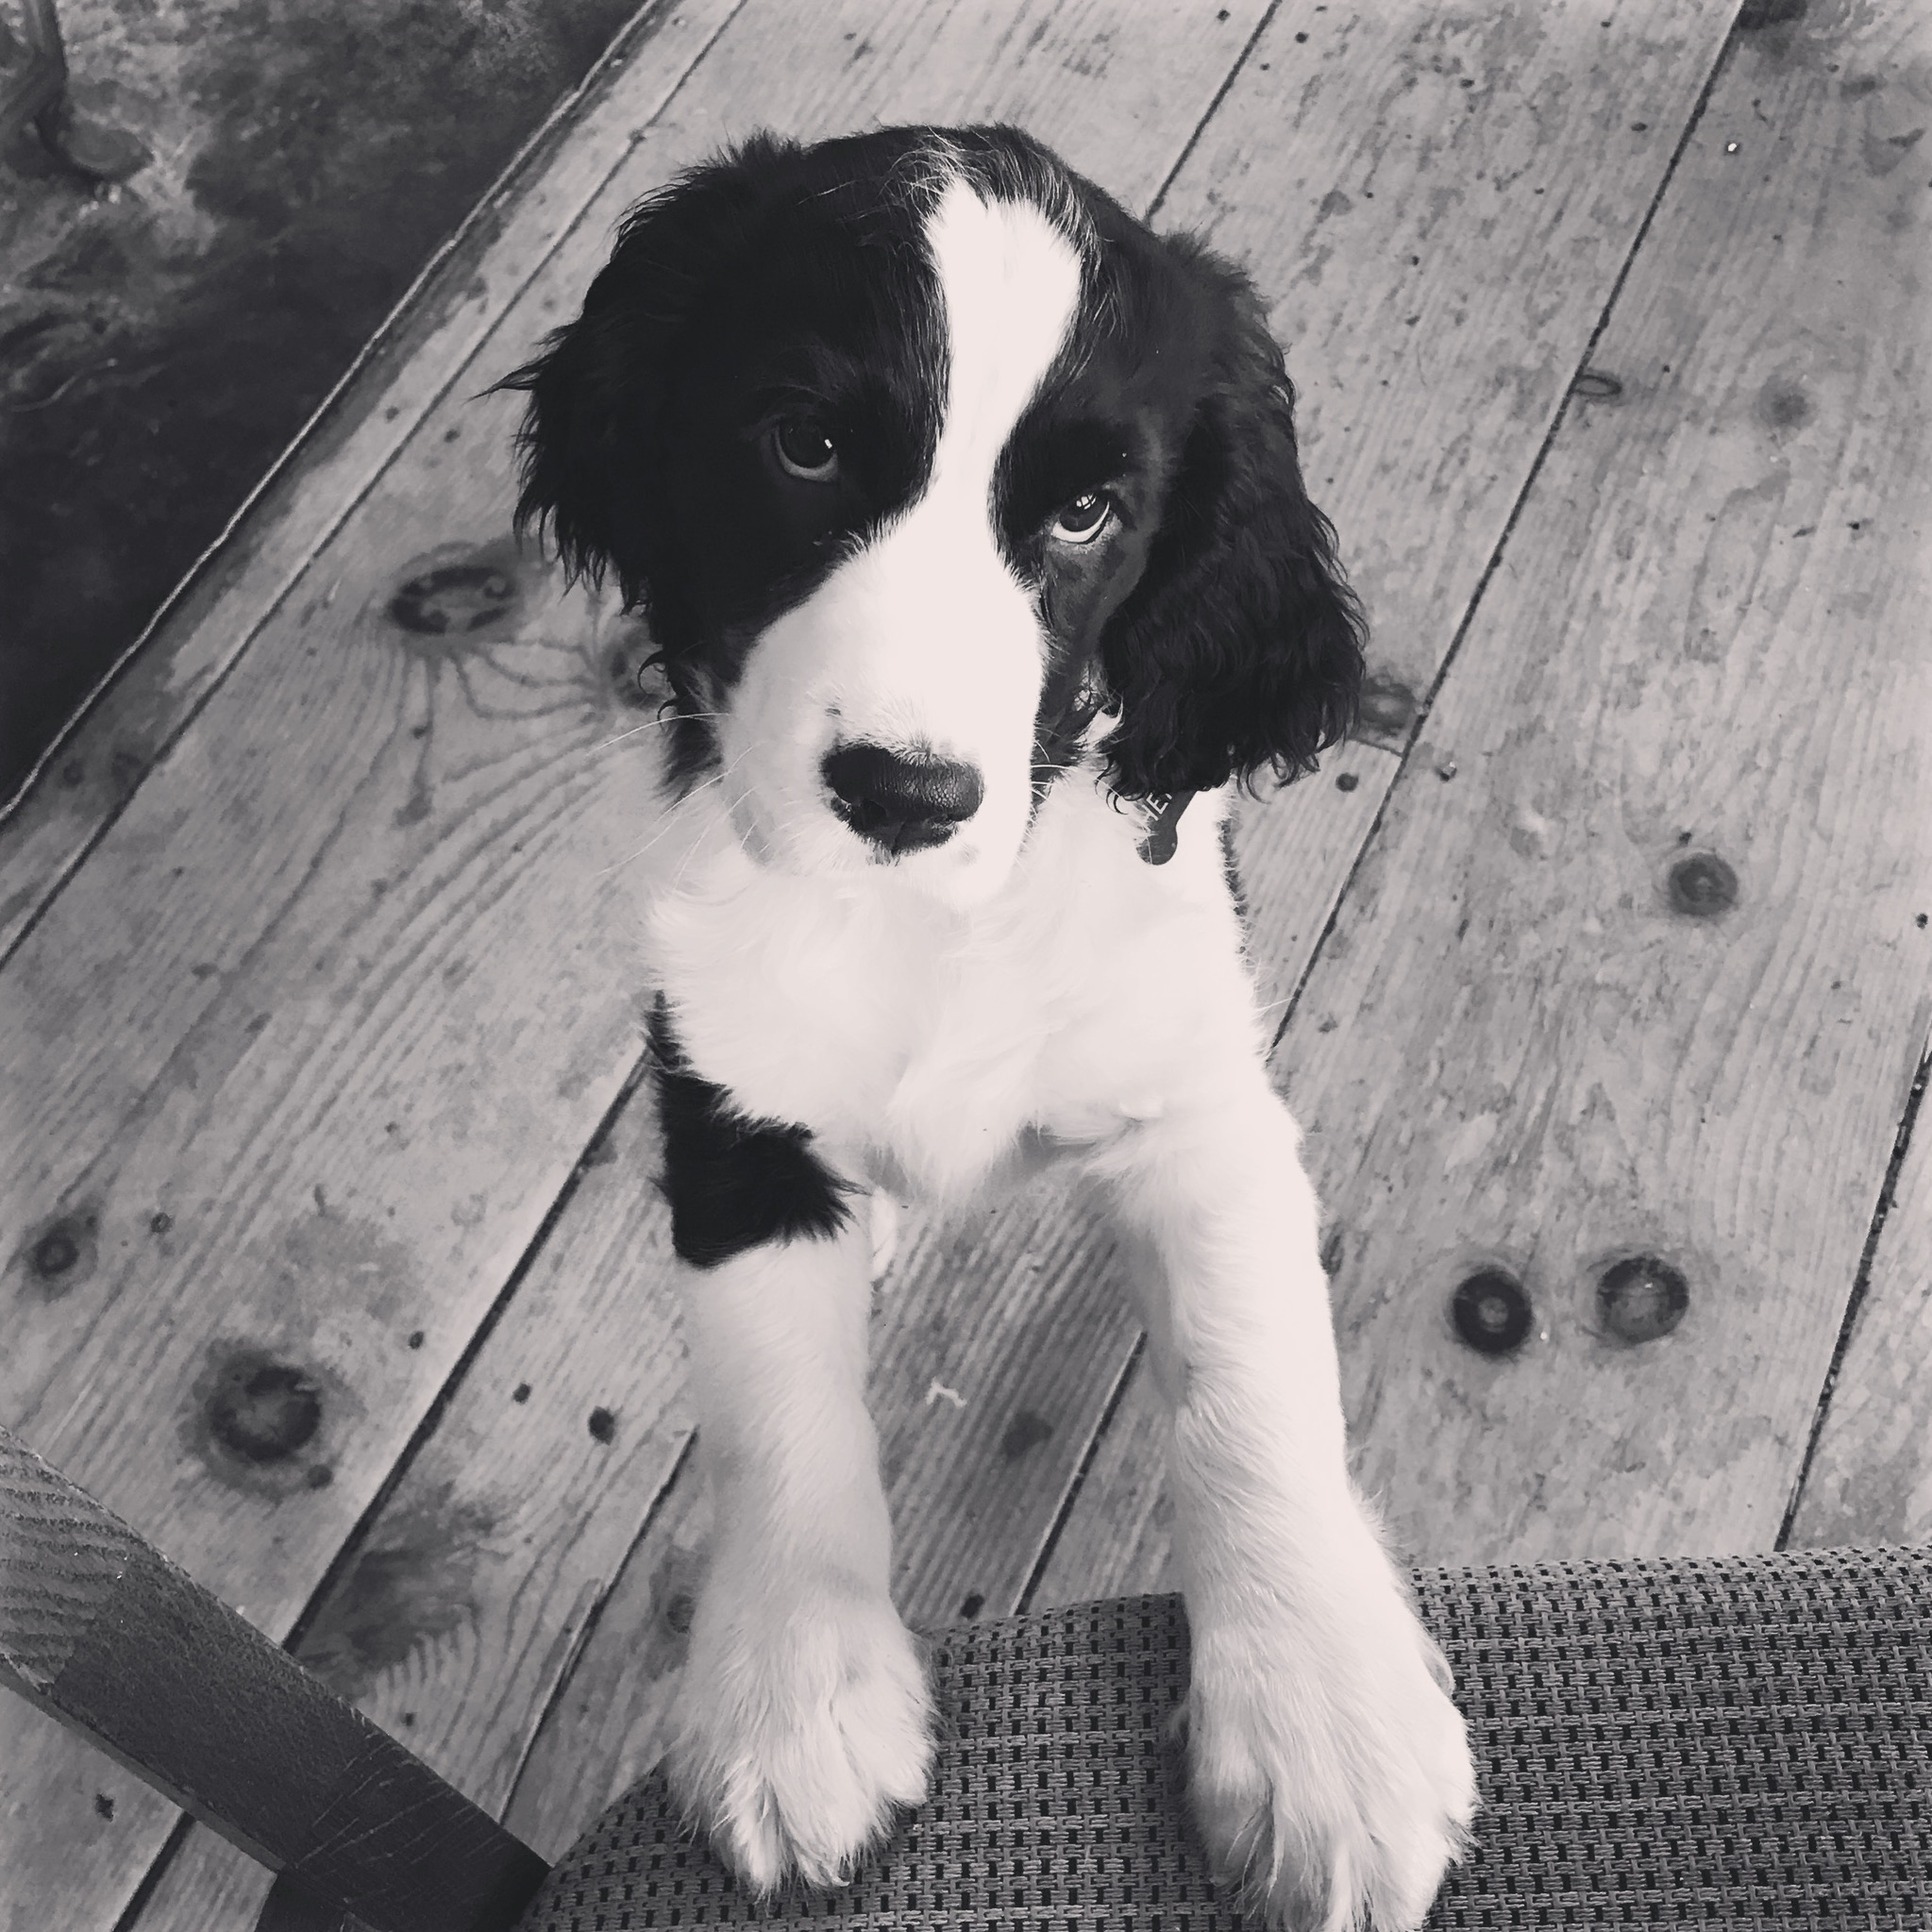 Henry as a puppy